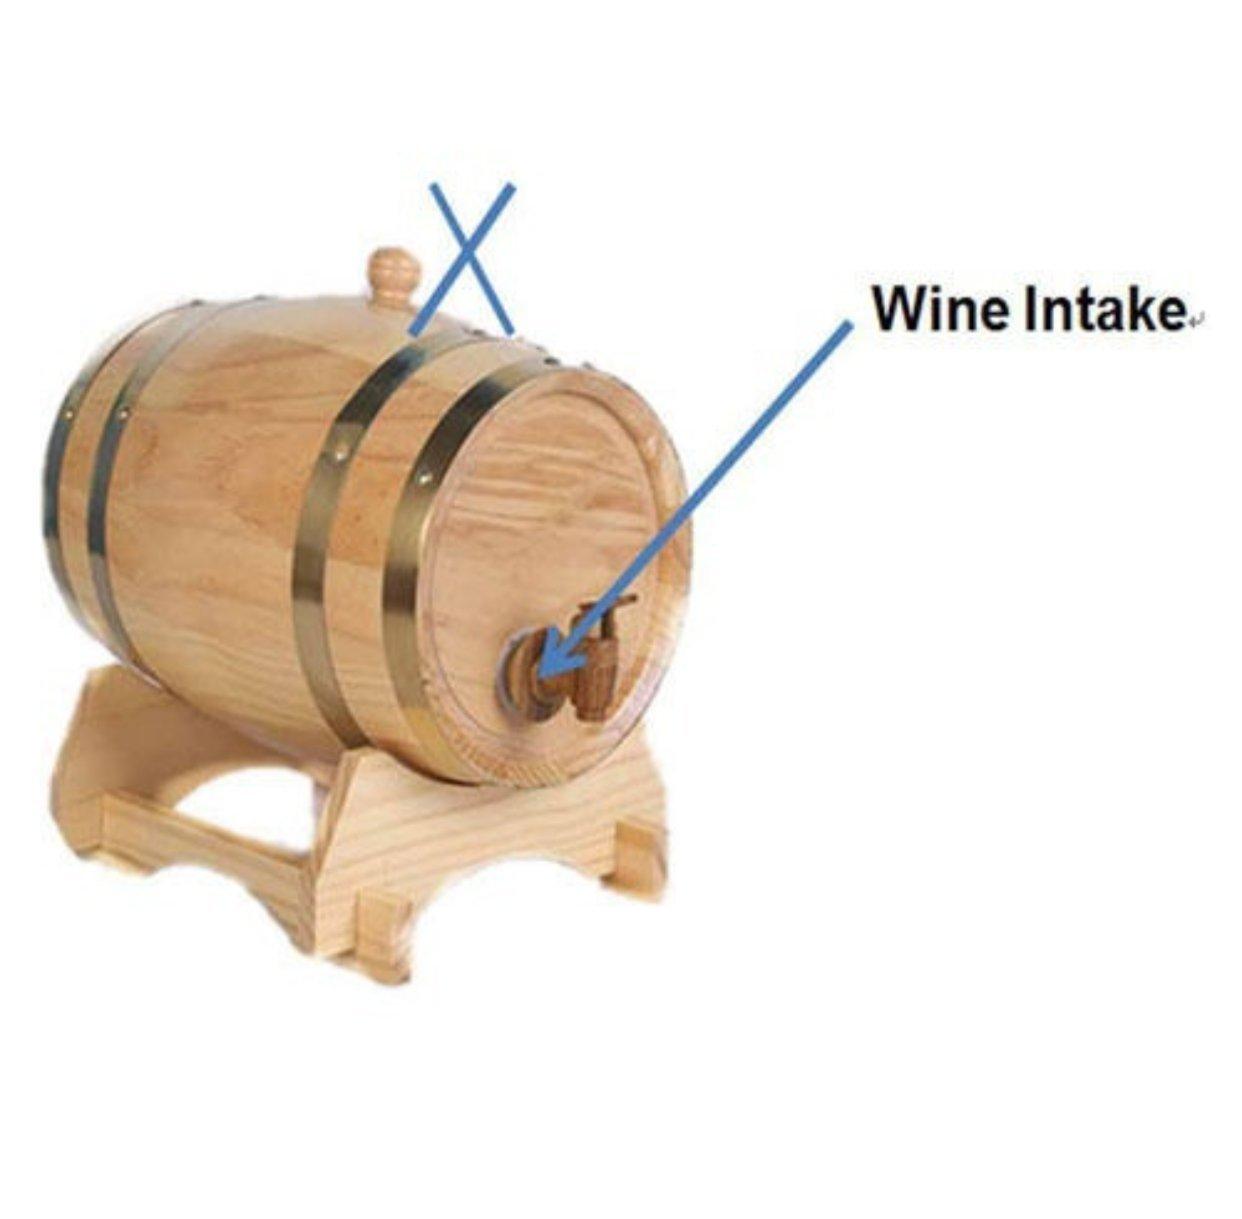 1.5L Oak Barrel Wooden Barrel for Storage or Aging Wine & Spirits Wine Barrels Wine Holder (White) Dream Art Wood